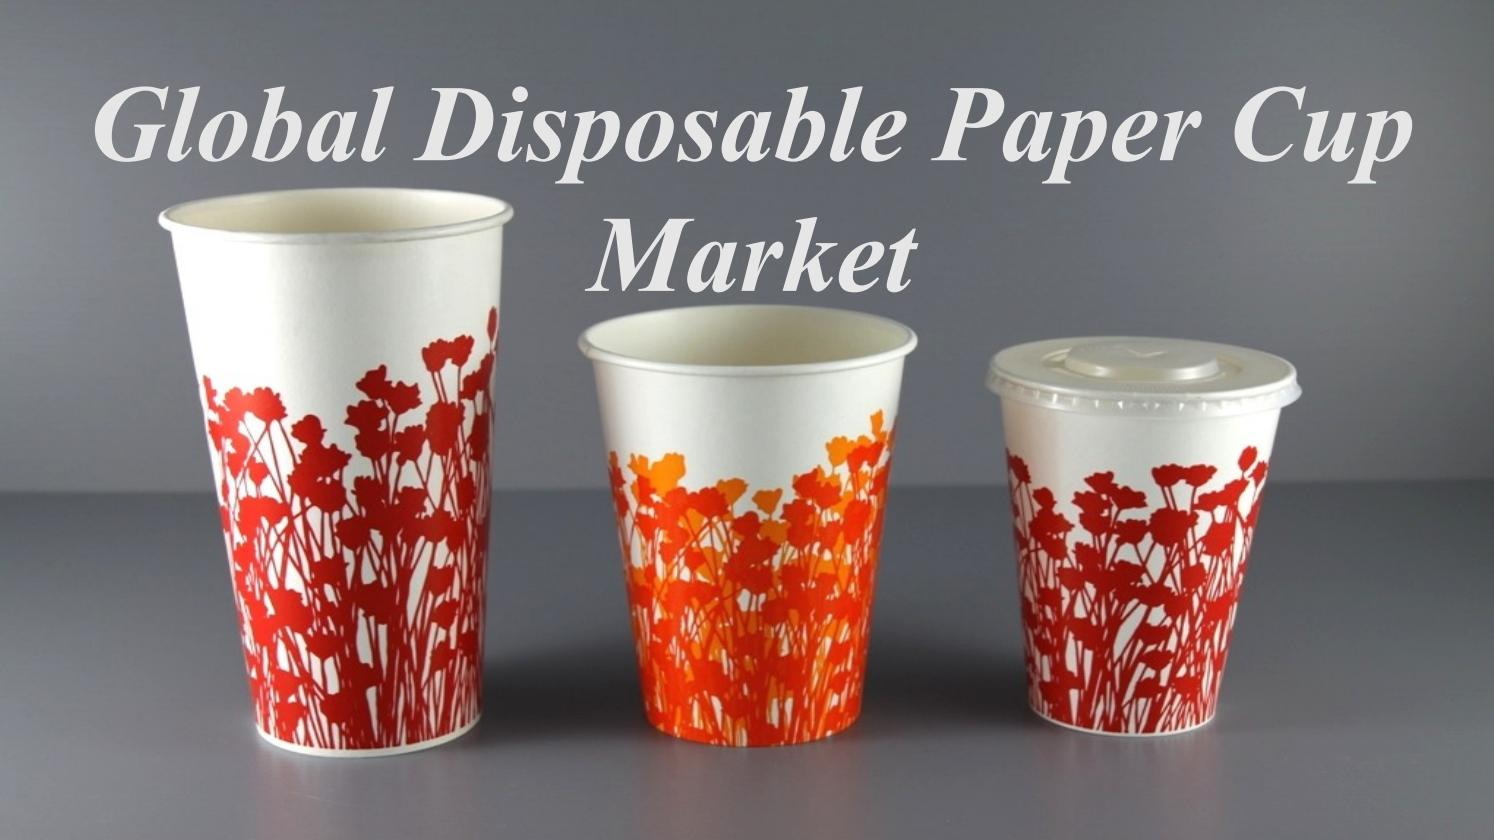 paper cup market research in india The global and china disposable paper cup industry 2017 market research report is a professional and in-depth study on the current state of the disposable paper cup.